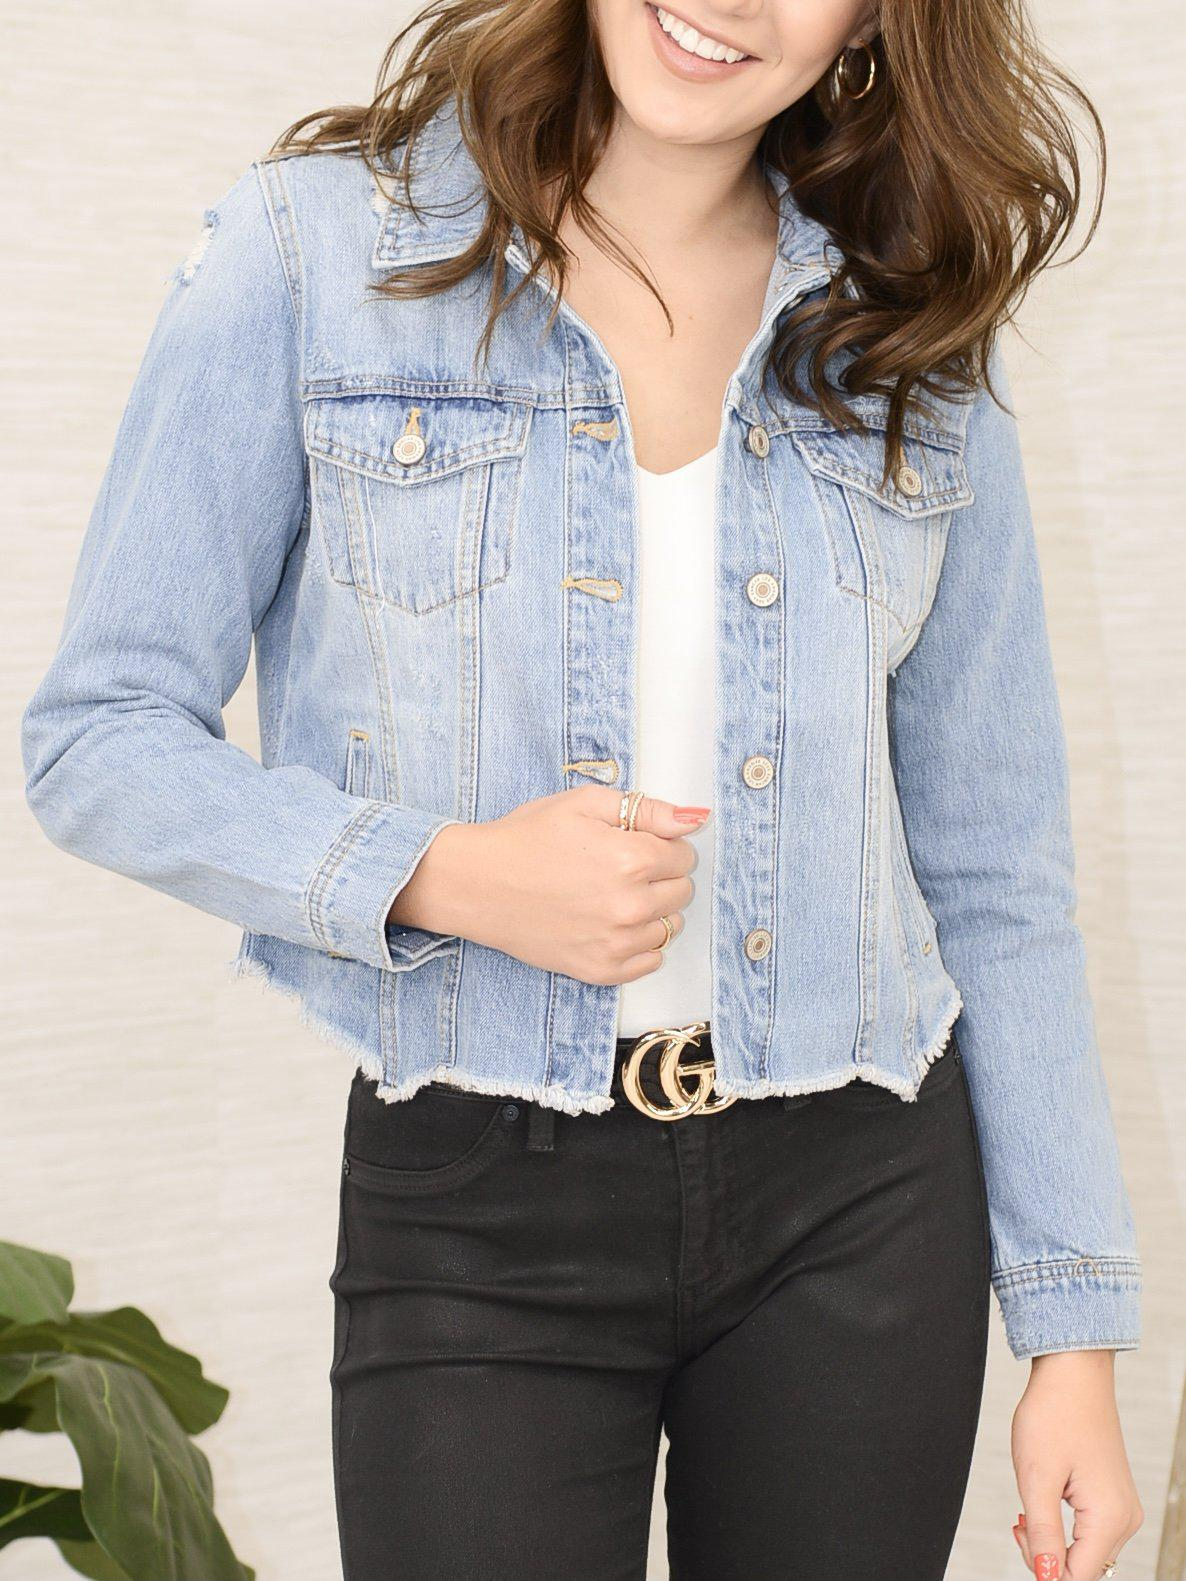 Do Denim Jacket-Women's -New Arrivals-Runway Seven